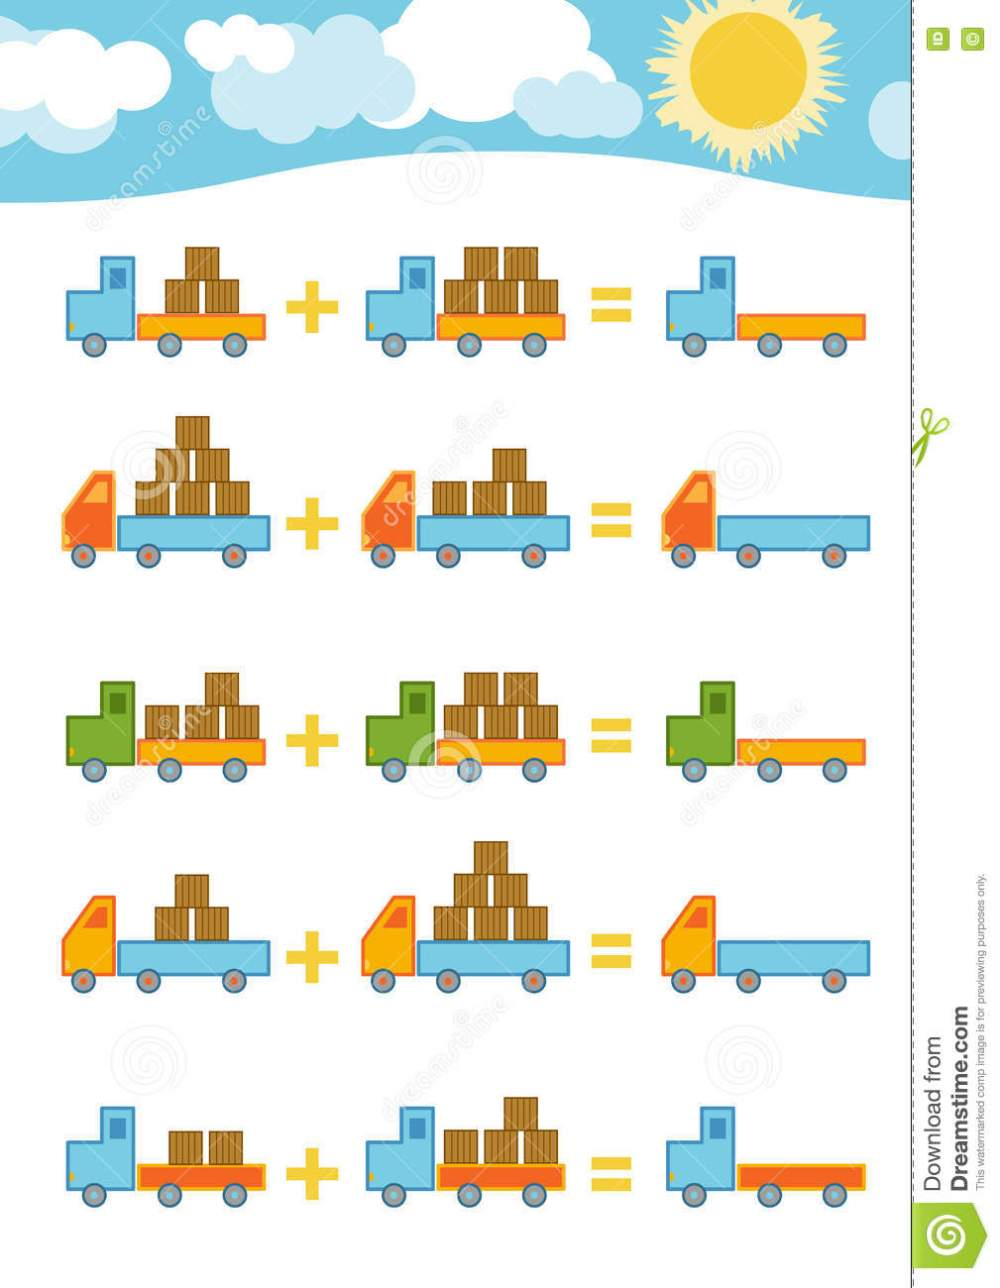 medium resolution of Counting Game For Children. Addition Worksheets Stock Vector - Illustration  of graphic